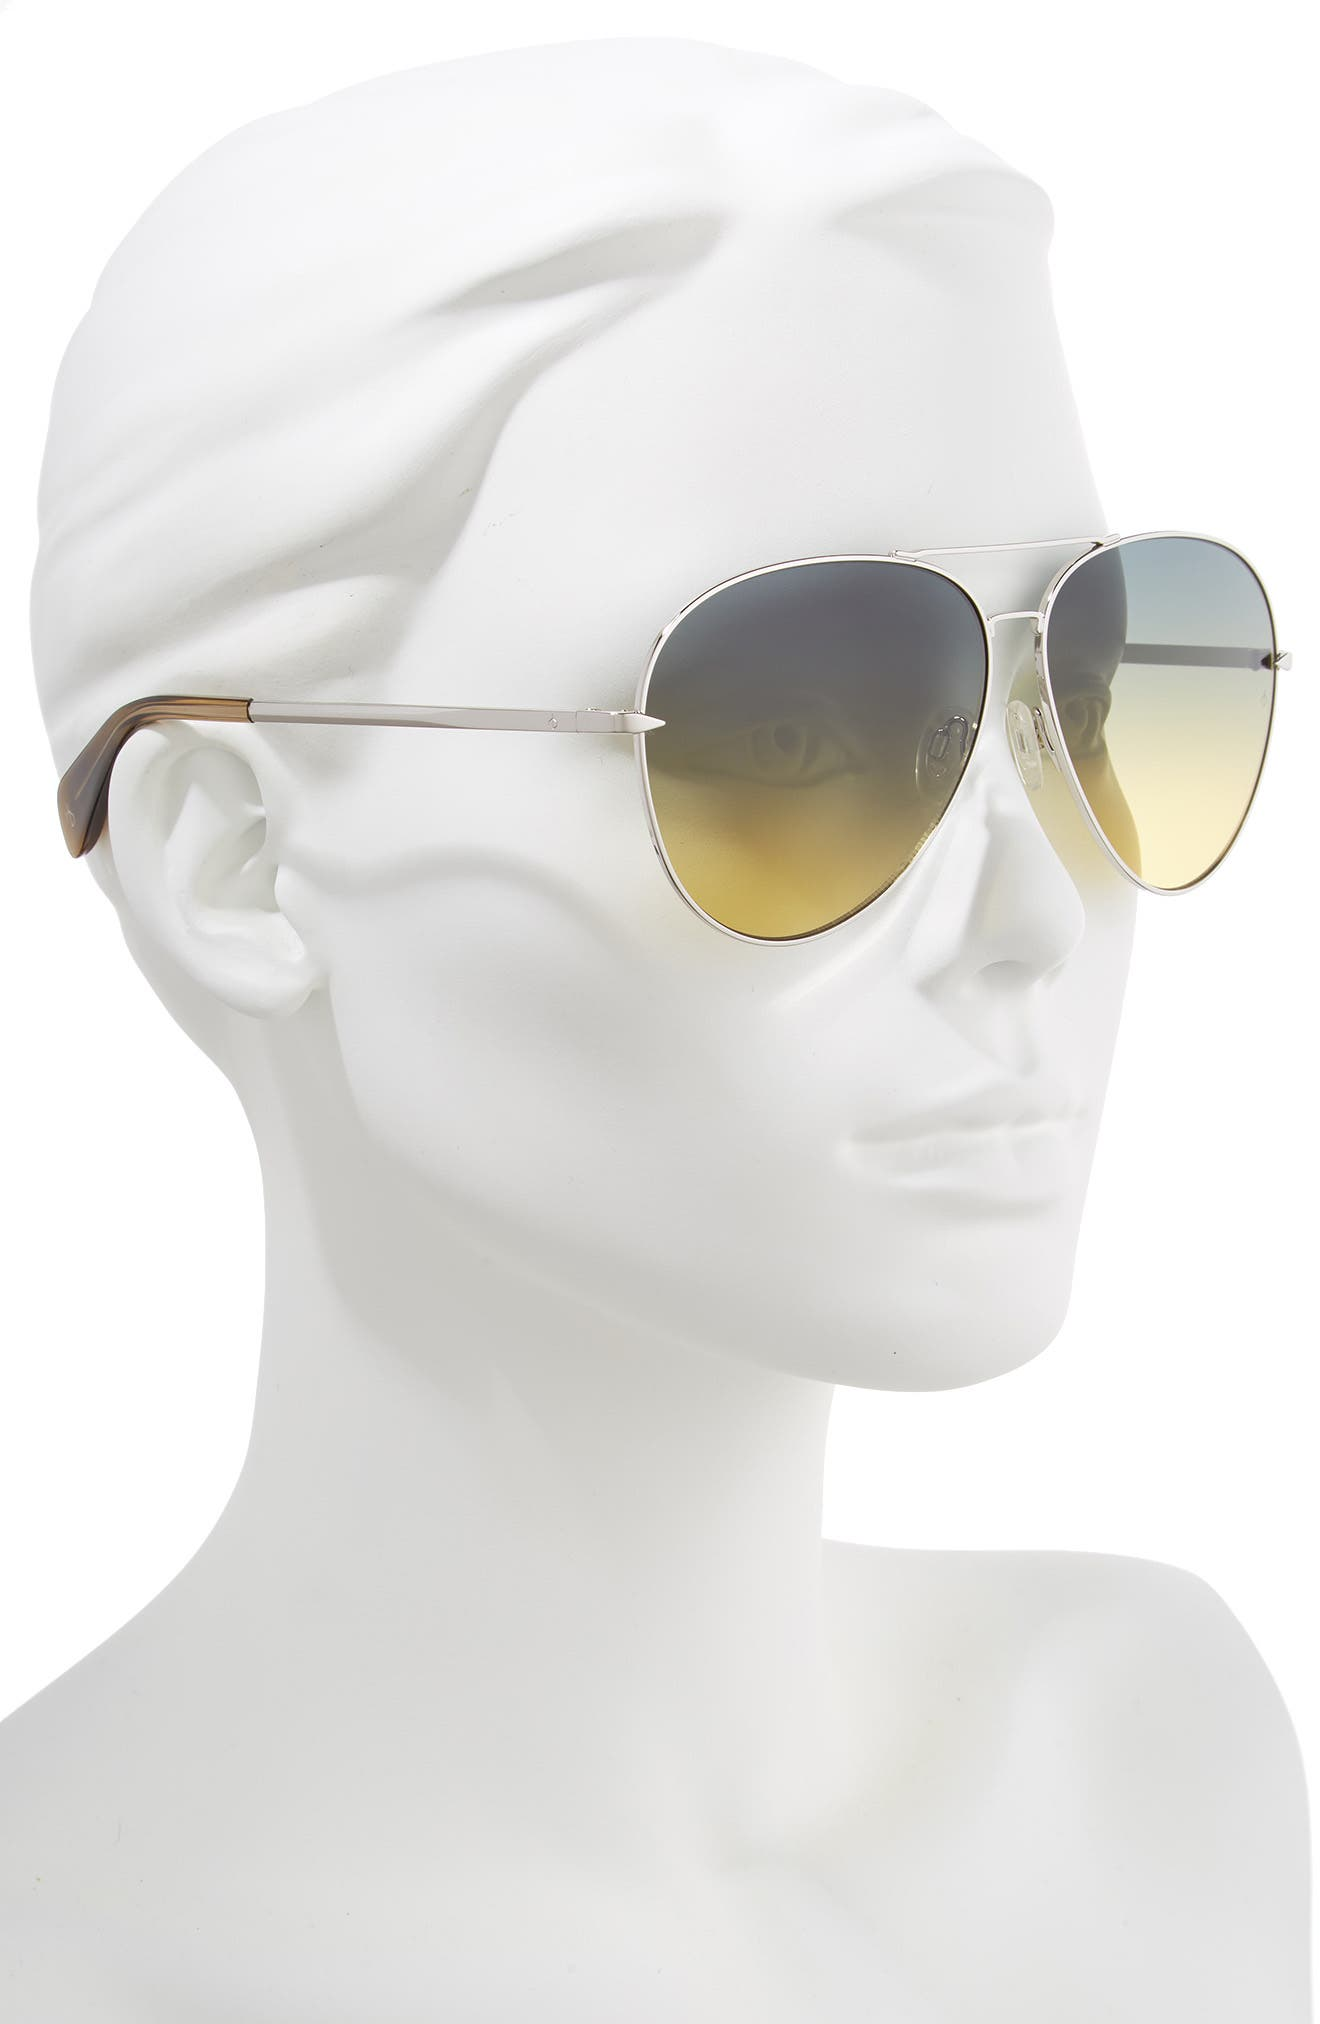 63mm Oversize Aviator Sunglasses,                             Alternate thumbnail 2, color,                             SILVER